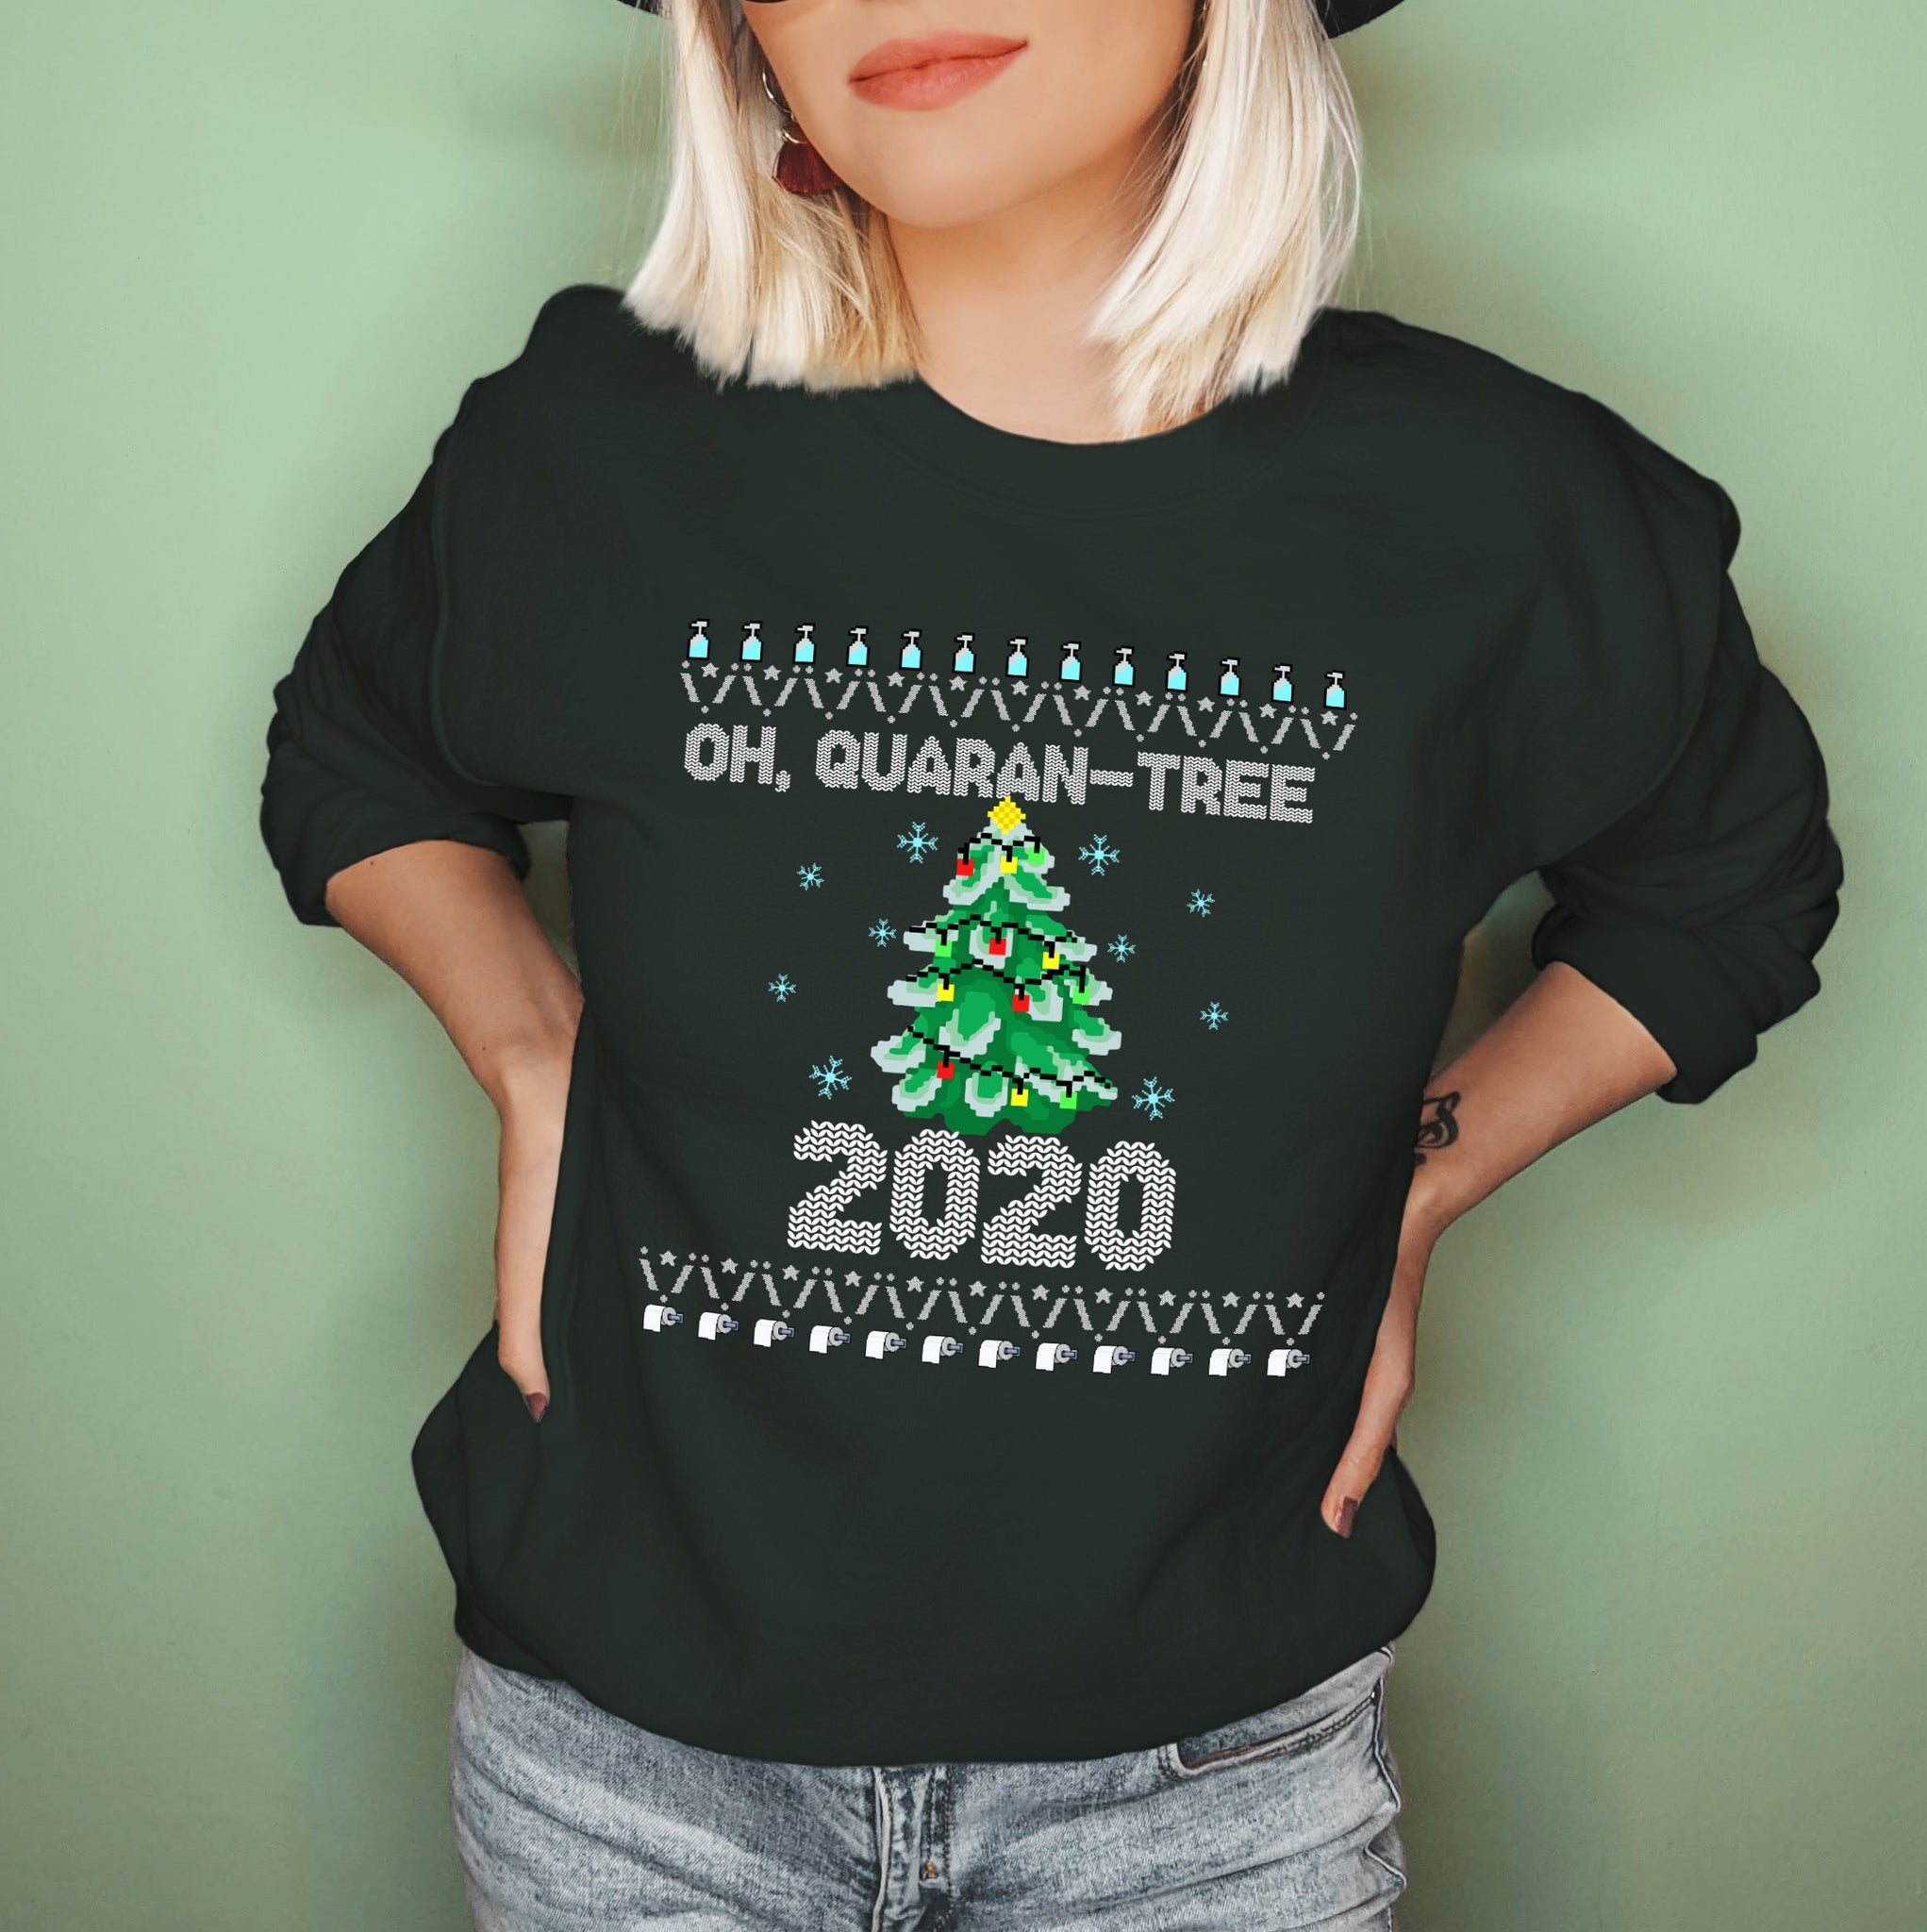 Forest sweatshirt with a christmas tree saying oh, quaran-tree - HighCiti